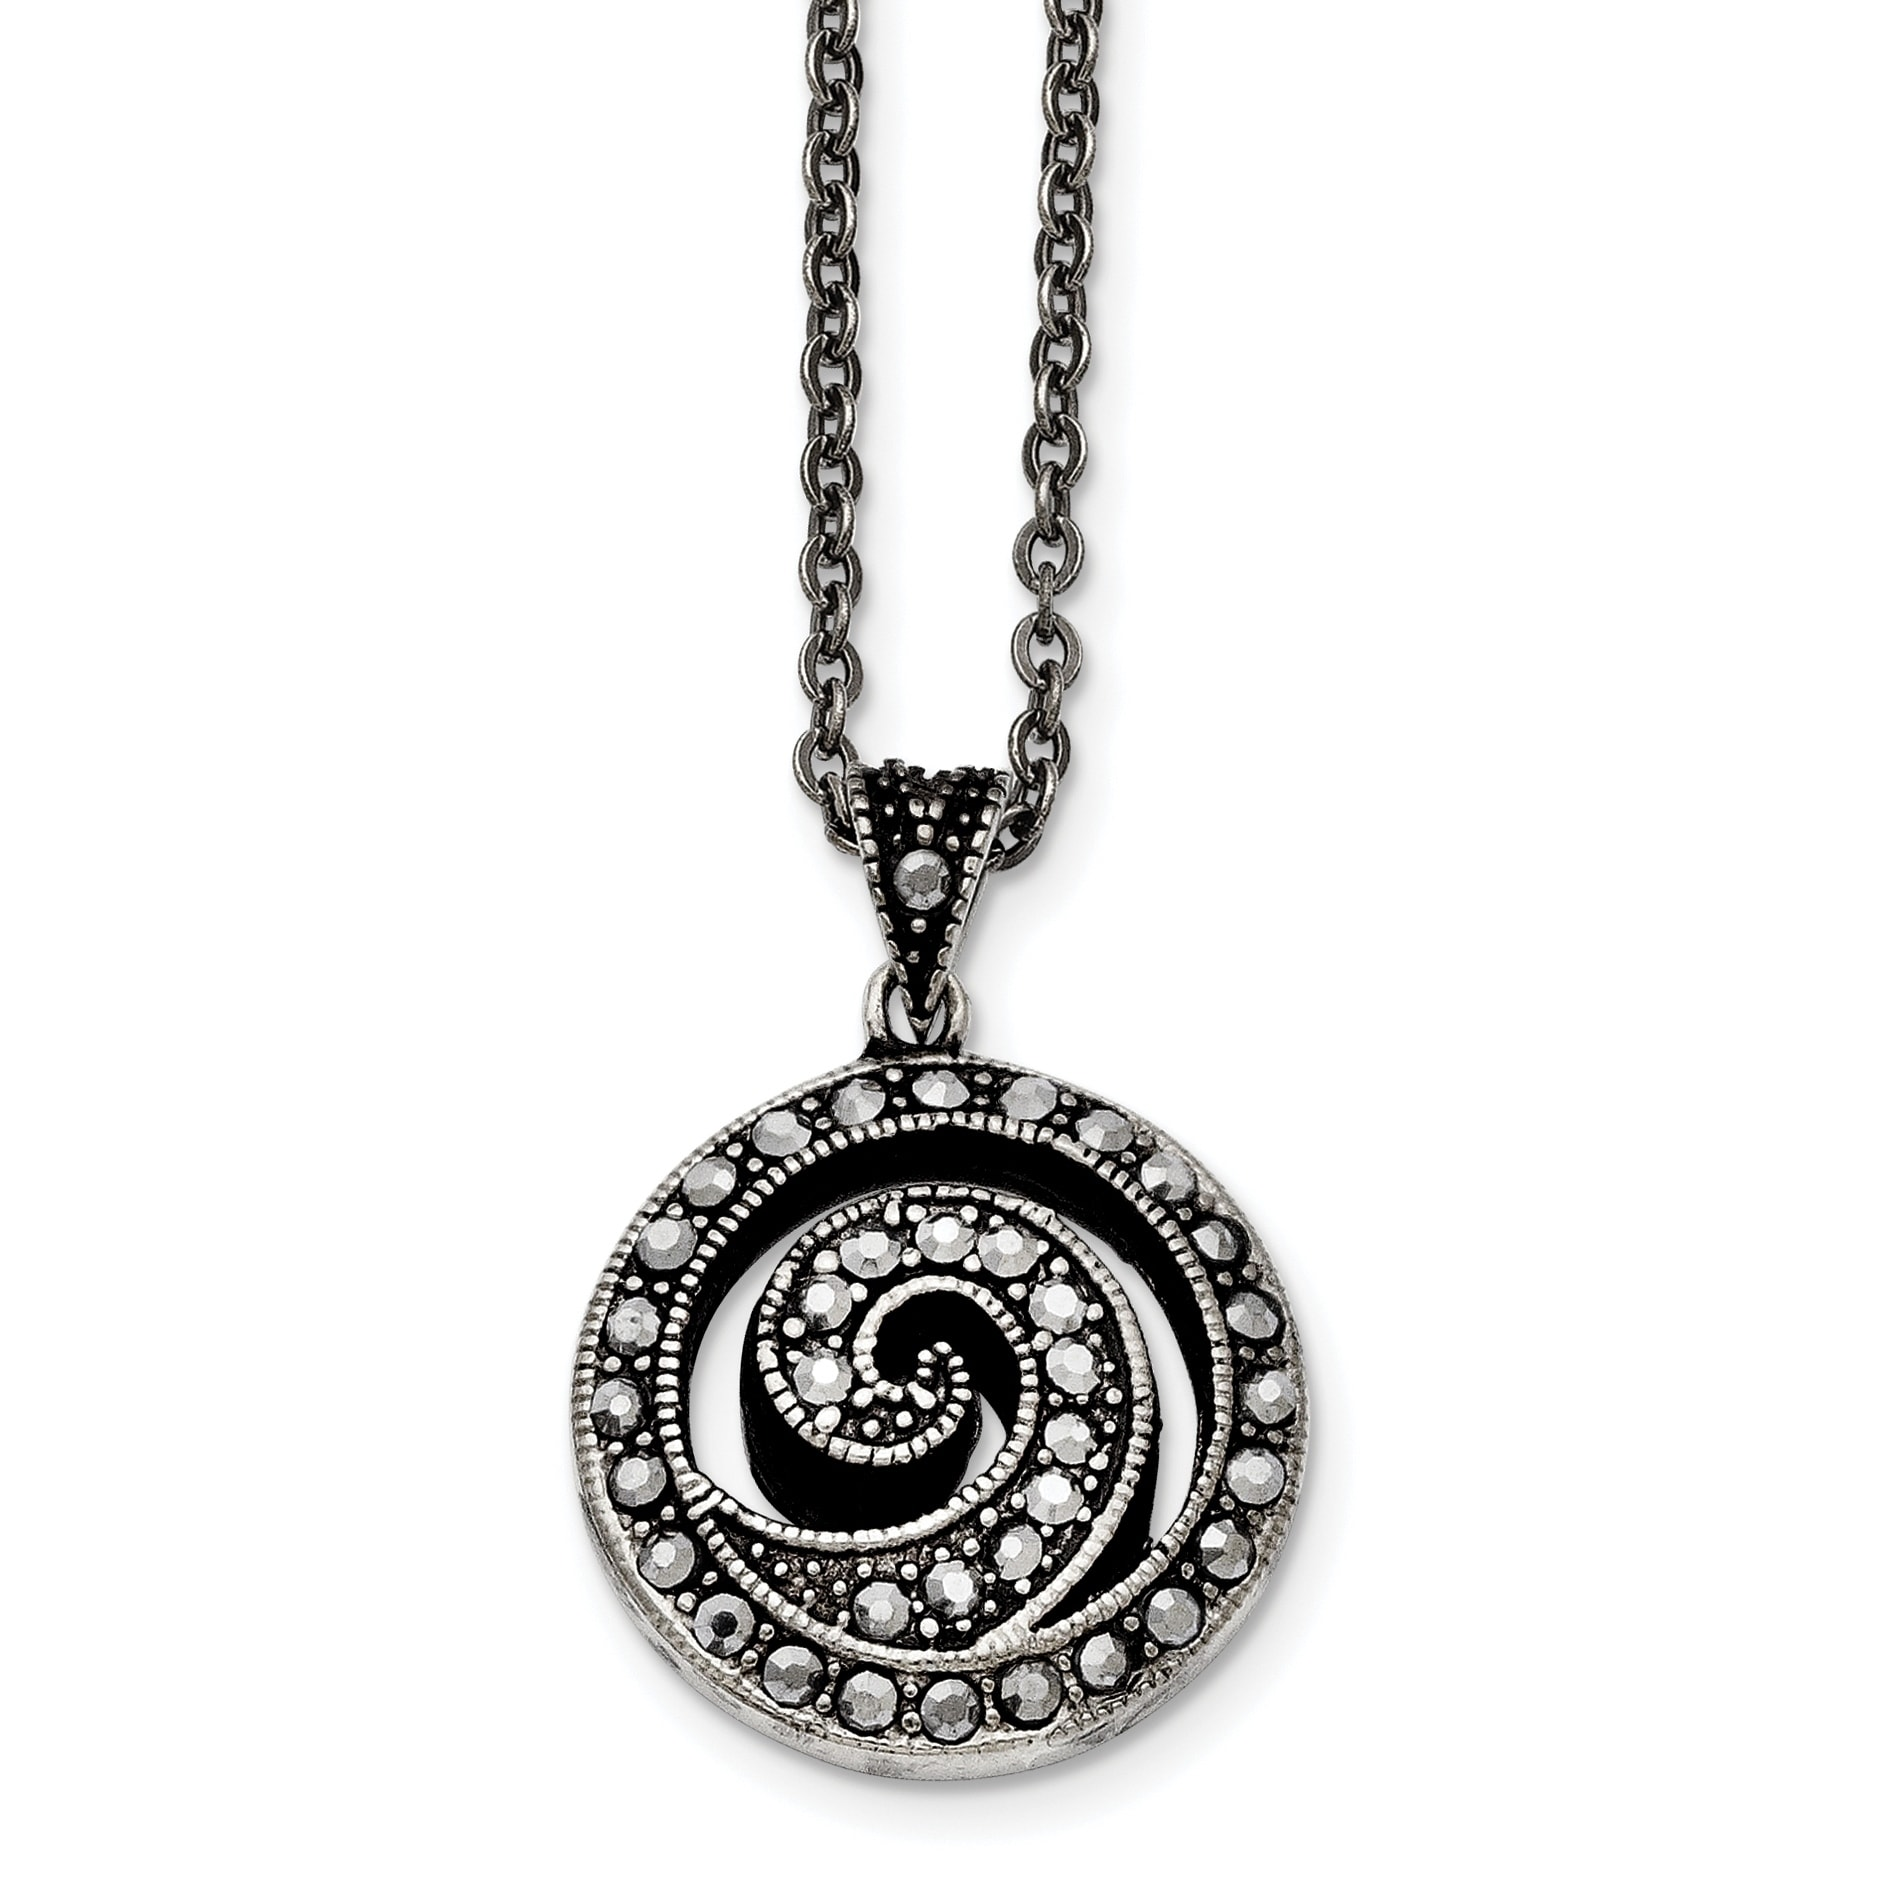 Stainless Steel Polished Fancy Swirl Pendant Necklace